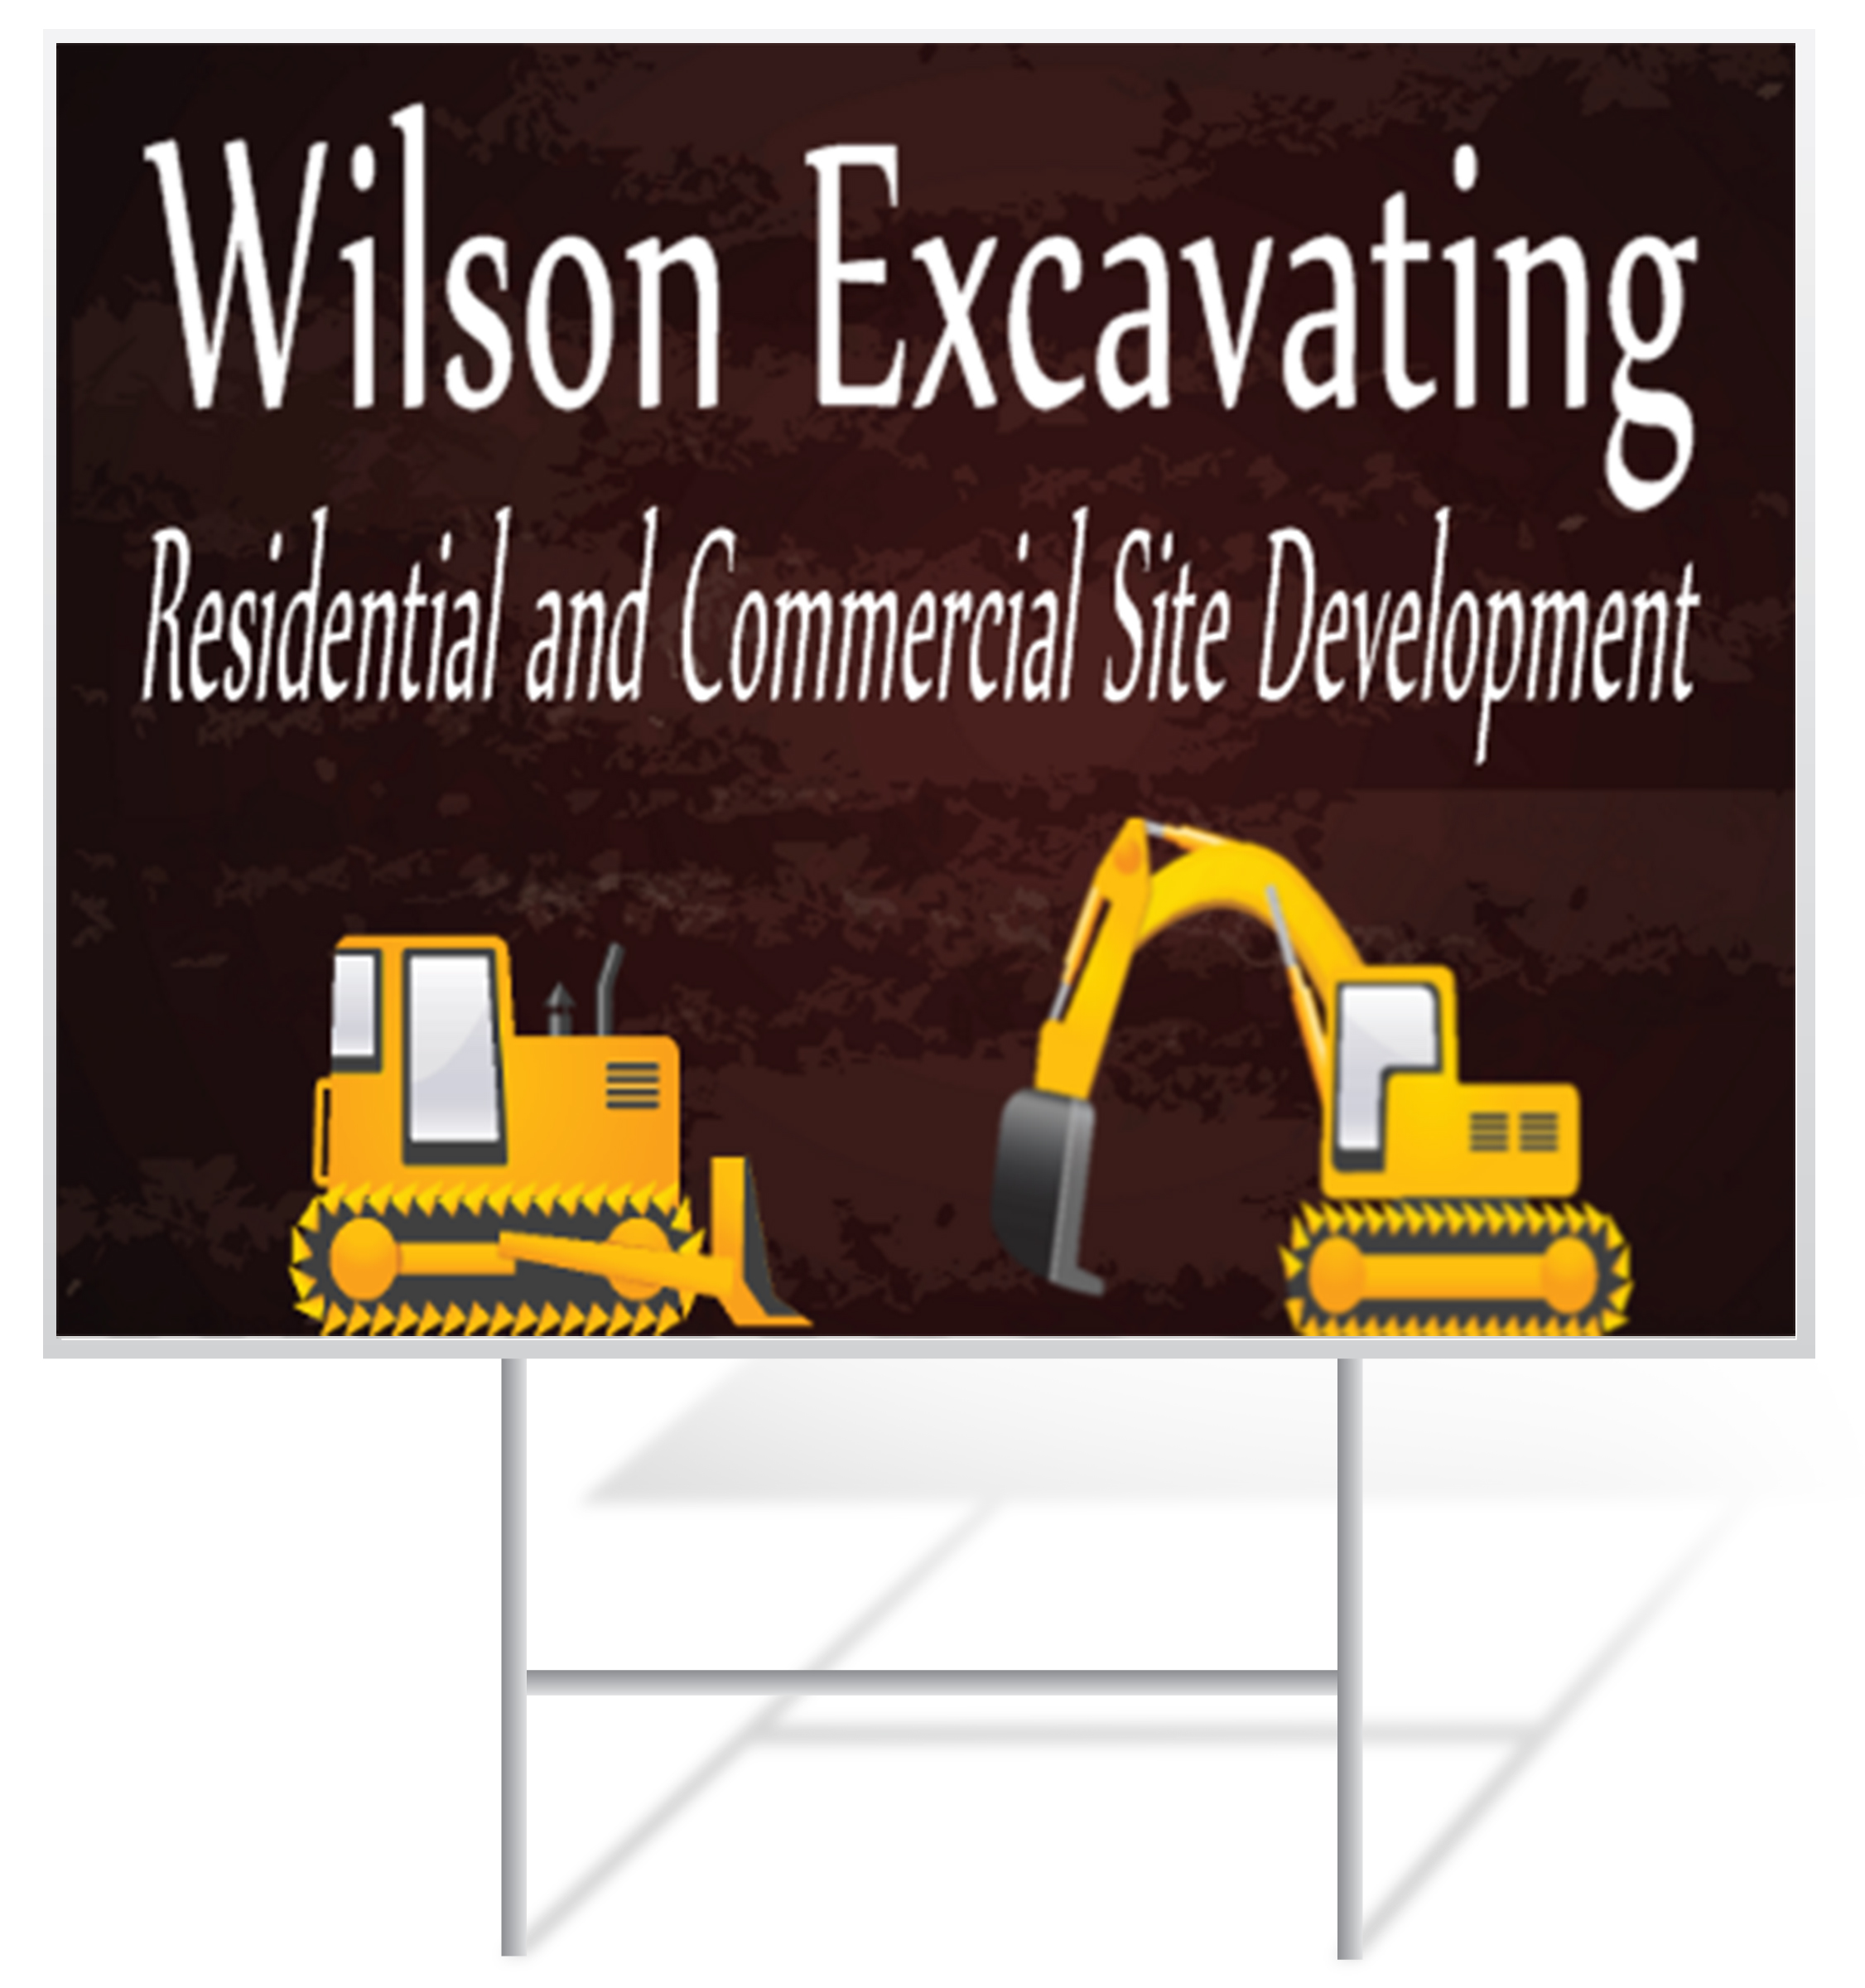 Excavating Lawn Signs | LawnSigns.com